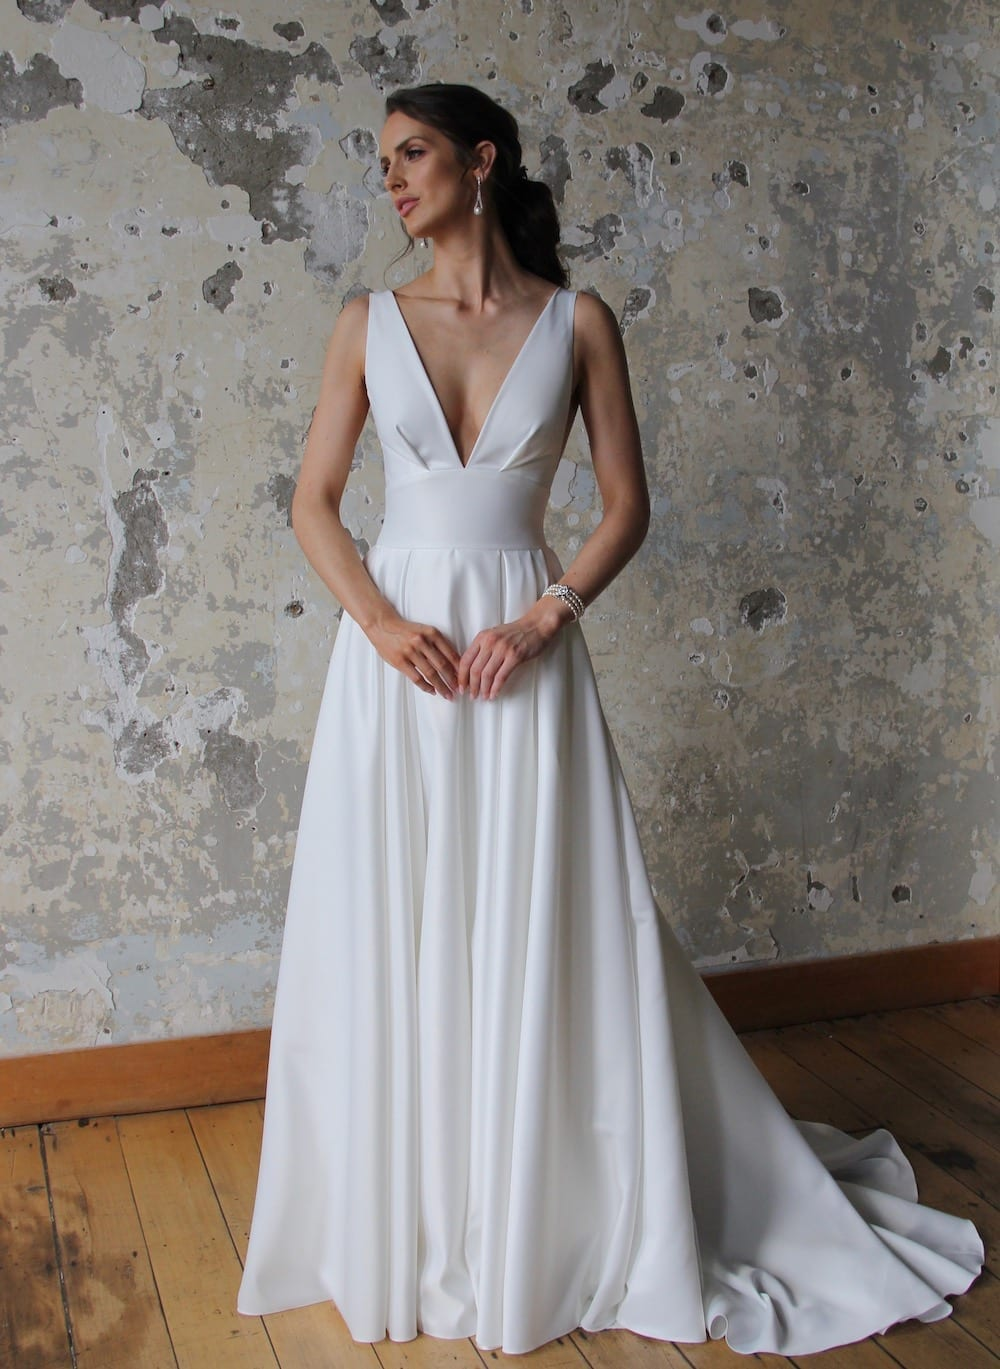 Female model wearing Vinka Design Modern Muse Wedding Dress. In chic warehouse the front detail of a gown with plunging v-neckline, Clean, sharp lines and skirt with deep pleated folds and pockets.